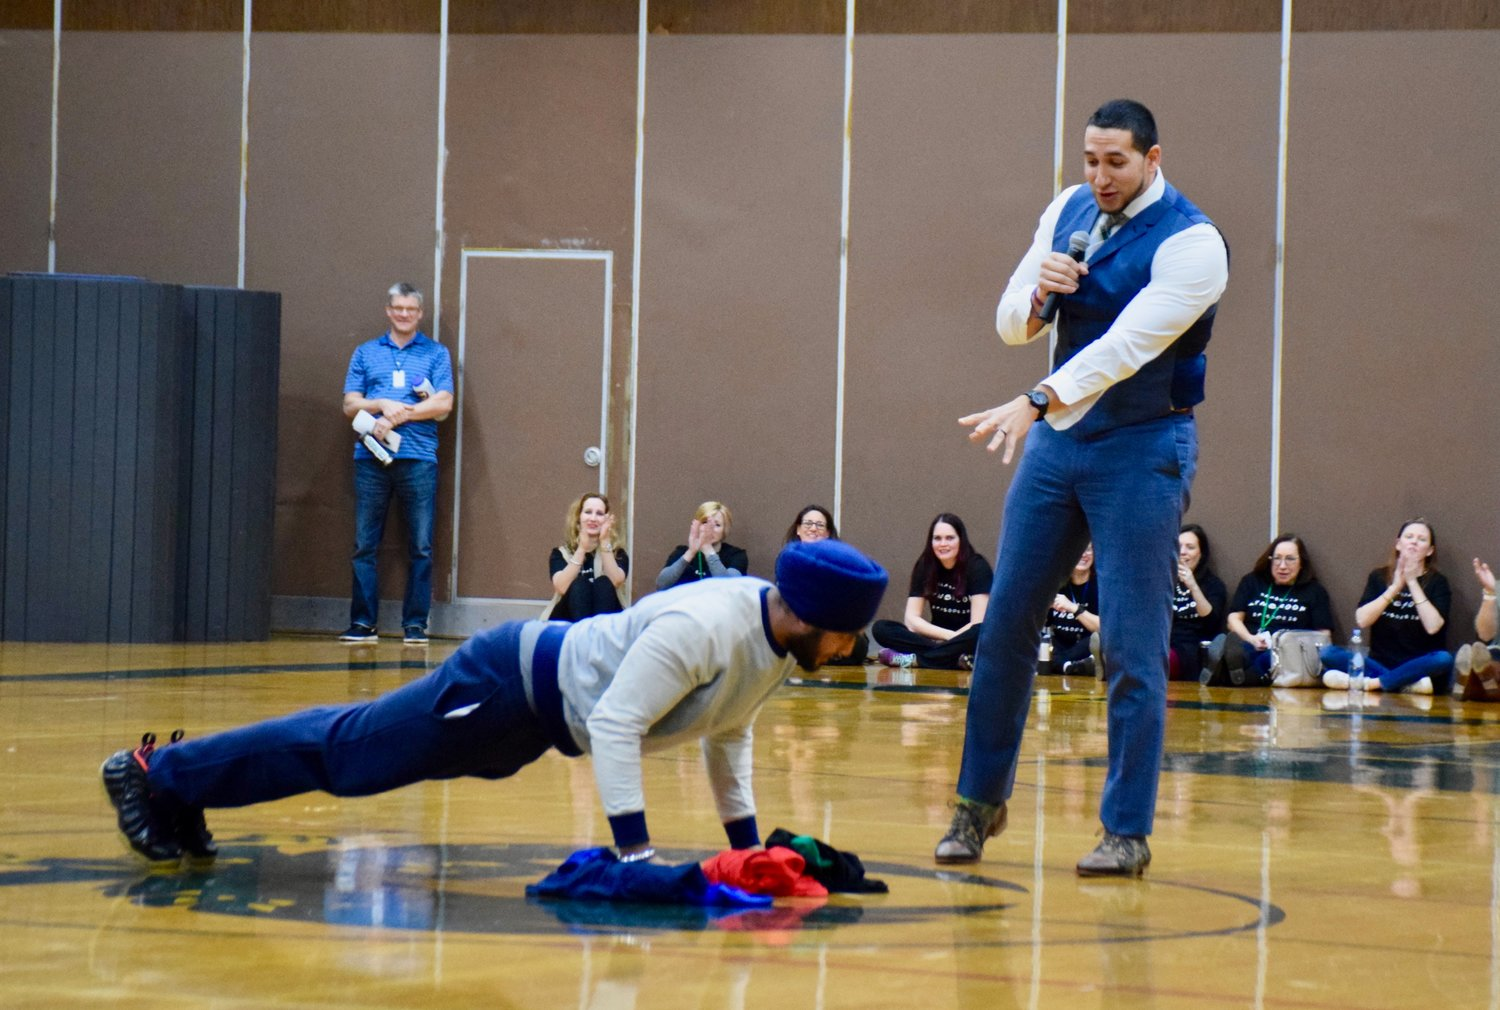 Lynbrook High School student Jassjeet Singh, left, volunteered to demonstrate exercises as Gonzalez spoke to the audience.